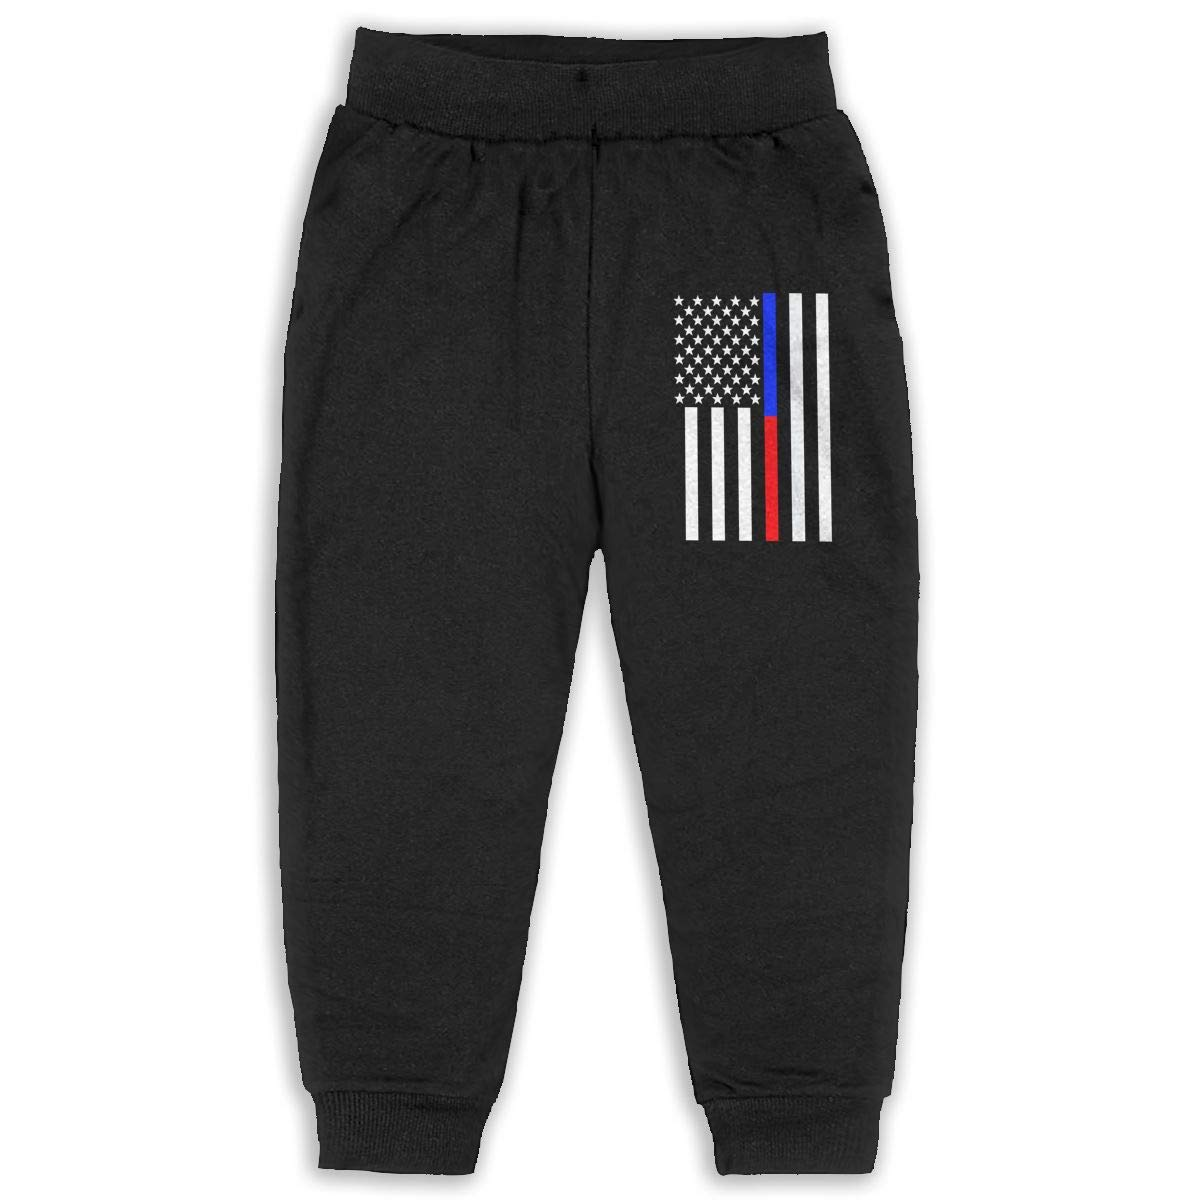 Never-Cold Thin Blue and Red American Flag Kids Boys Sweatpants Elastic Waist Pants for 2T-6T